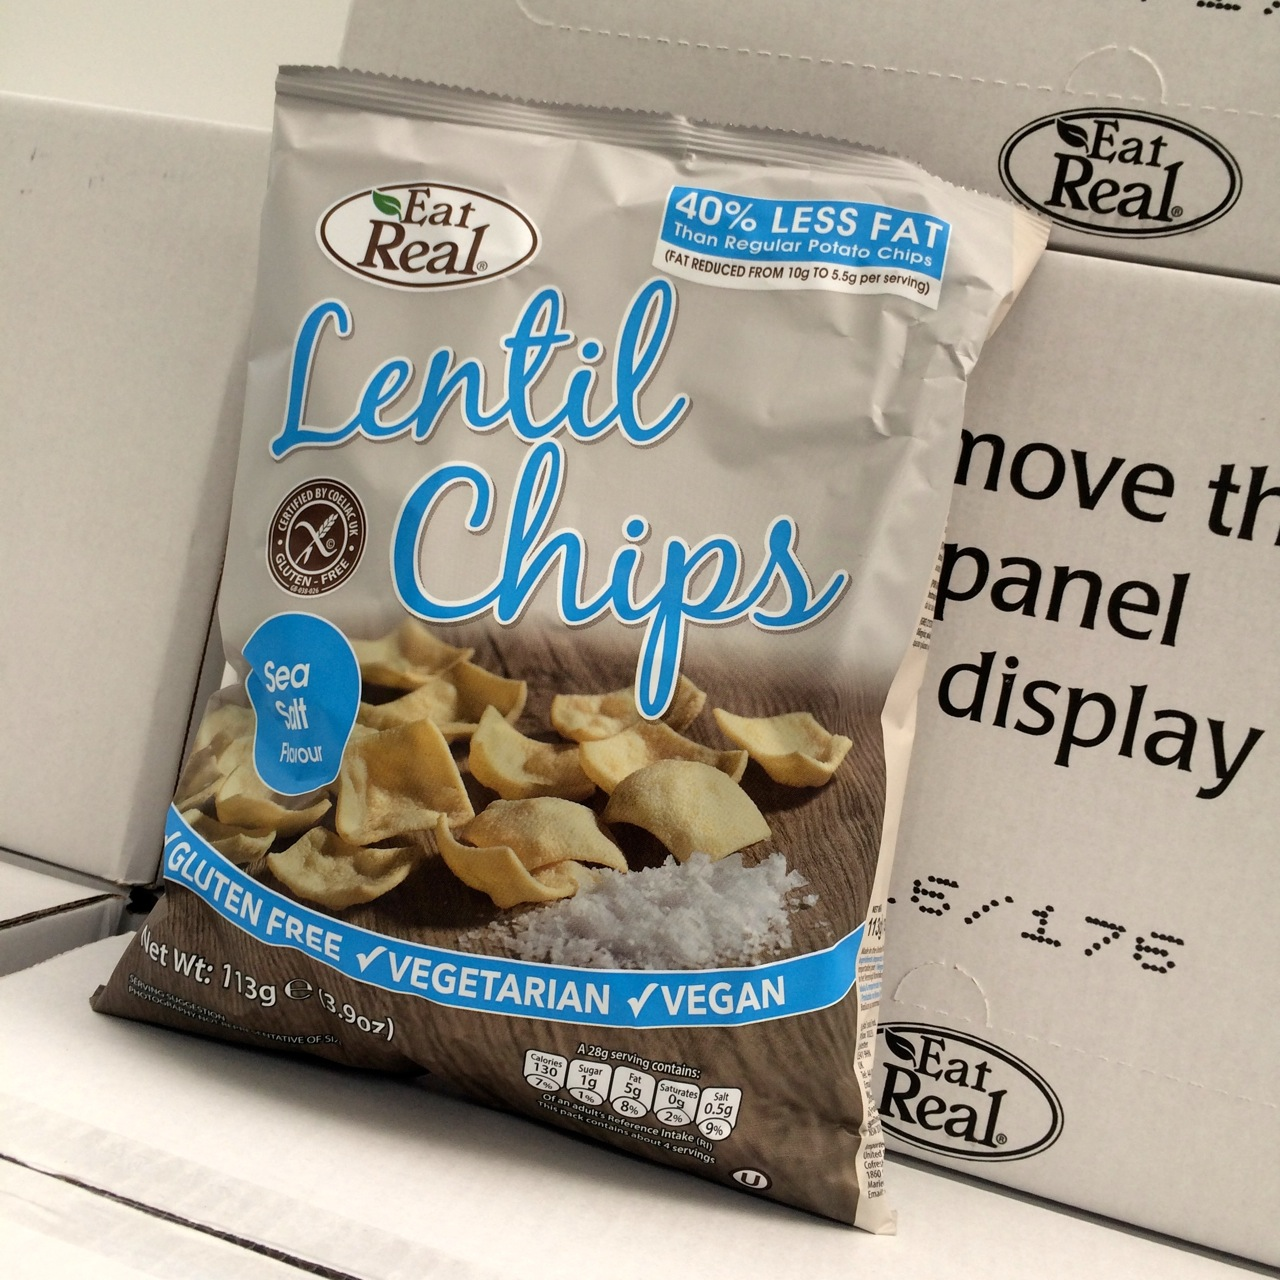 http://i1.wp.com/fatgayvegan.com/wp-content/uploads/2015/07/Lentil-chips-at-Just-V-Show.jpg?fit=1280%2C1280